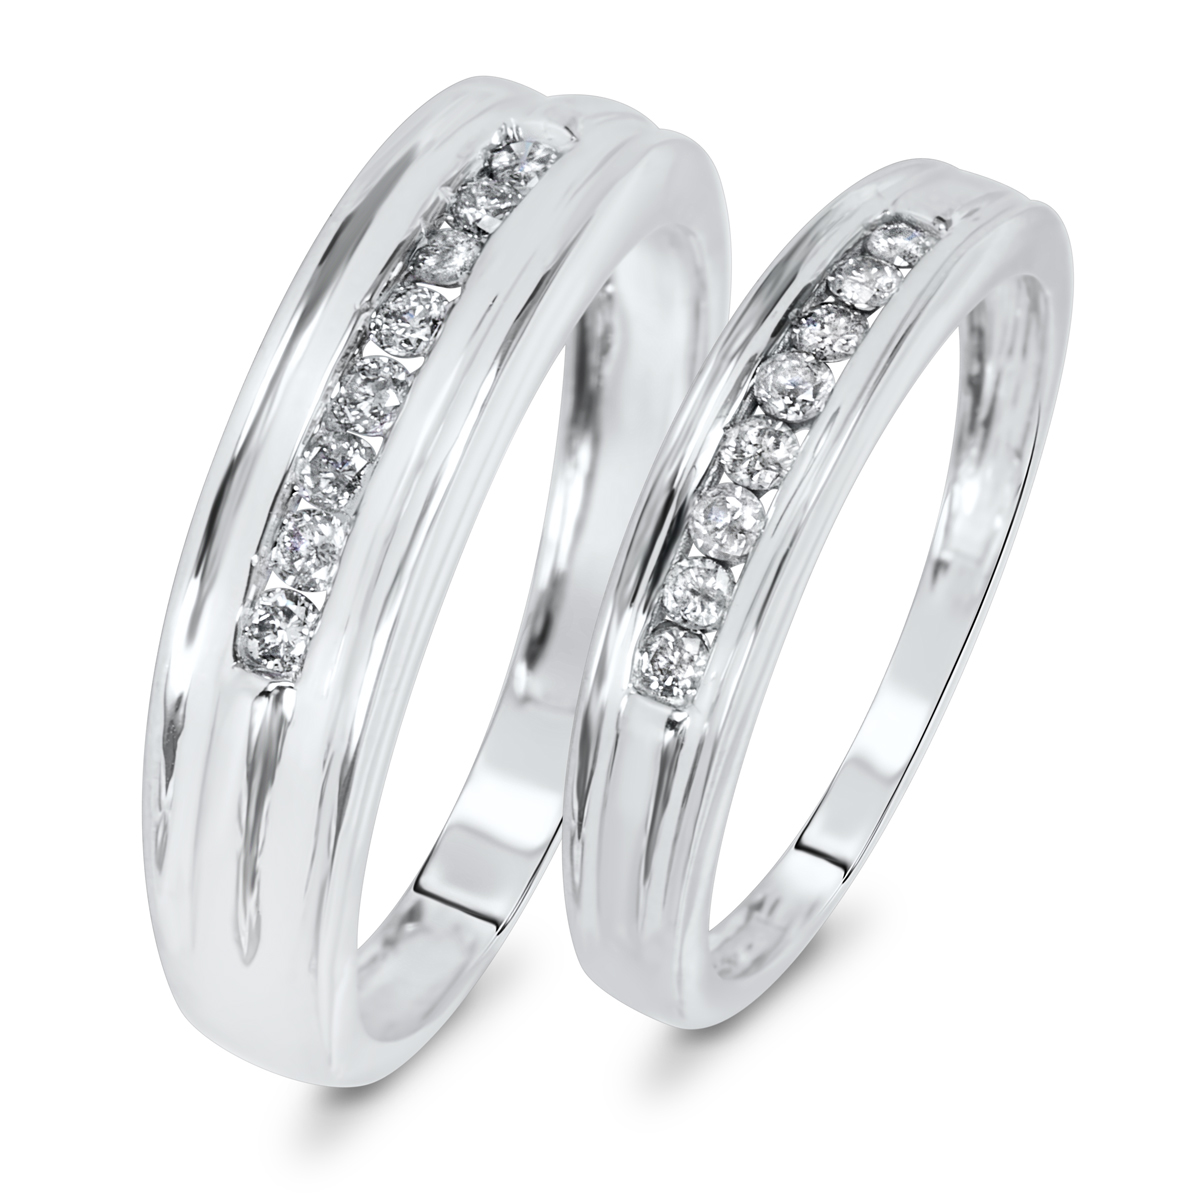 matching wedding bands white gold On matching wedding rings white gold